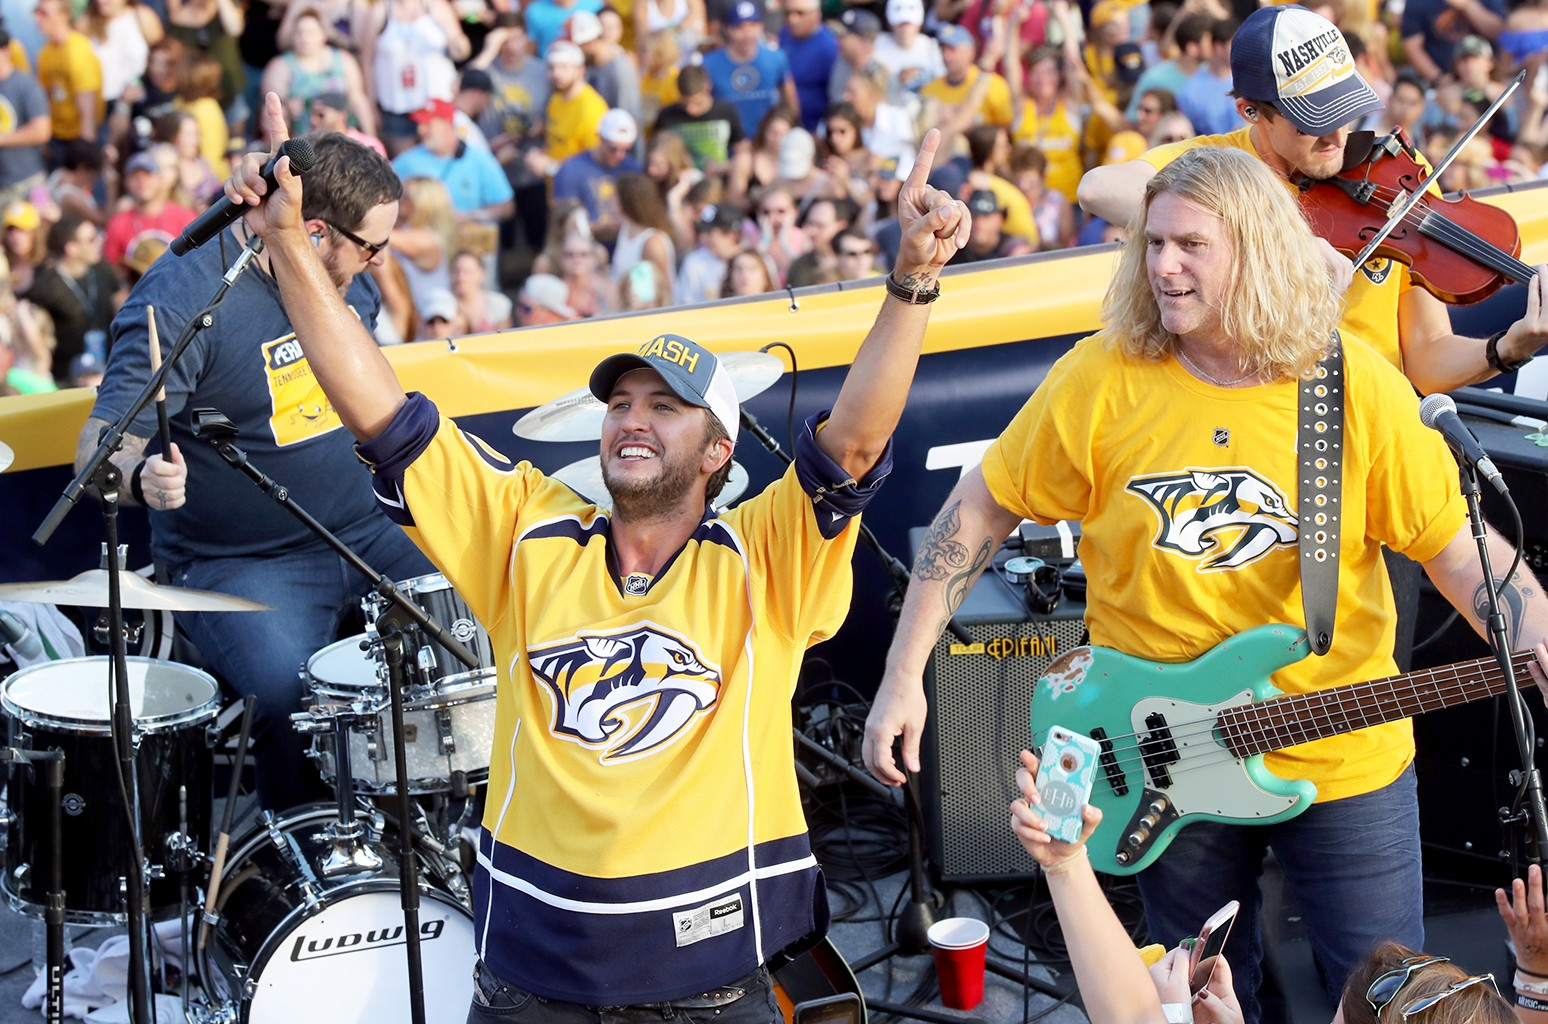 Luke Bryan performs during the opening of the TV broadcast of The 2017 Stanley Cup Final, Game 6 at Tootsie's Orchid Lounge on June 11, 2017 in Nashville, Tenn.